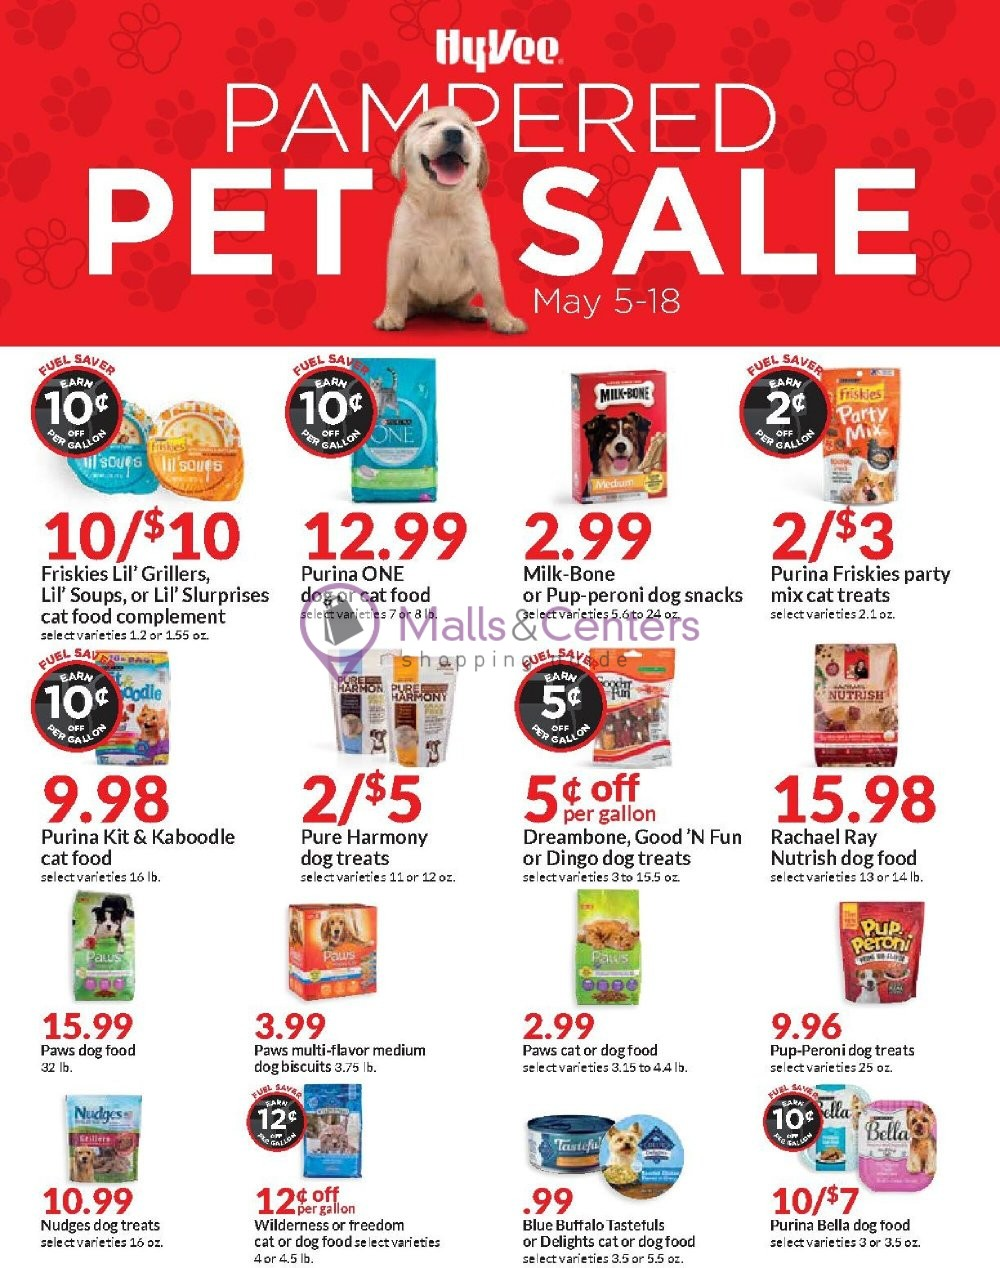 weekly ads HyVee - page 1 - mallscenters.com